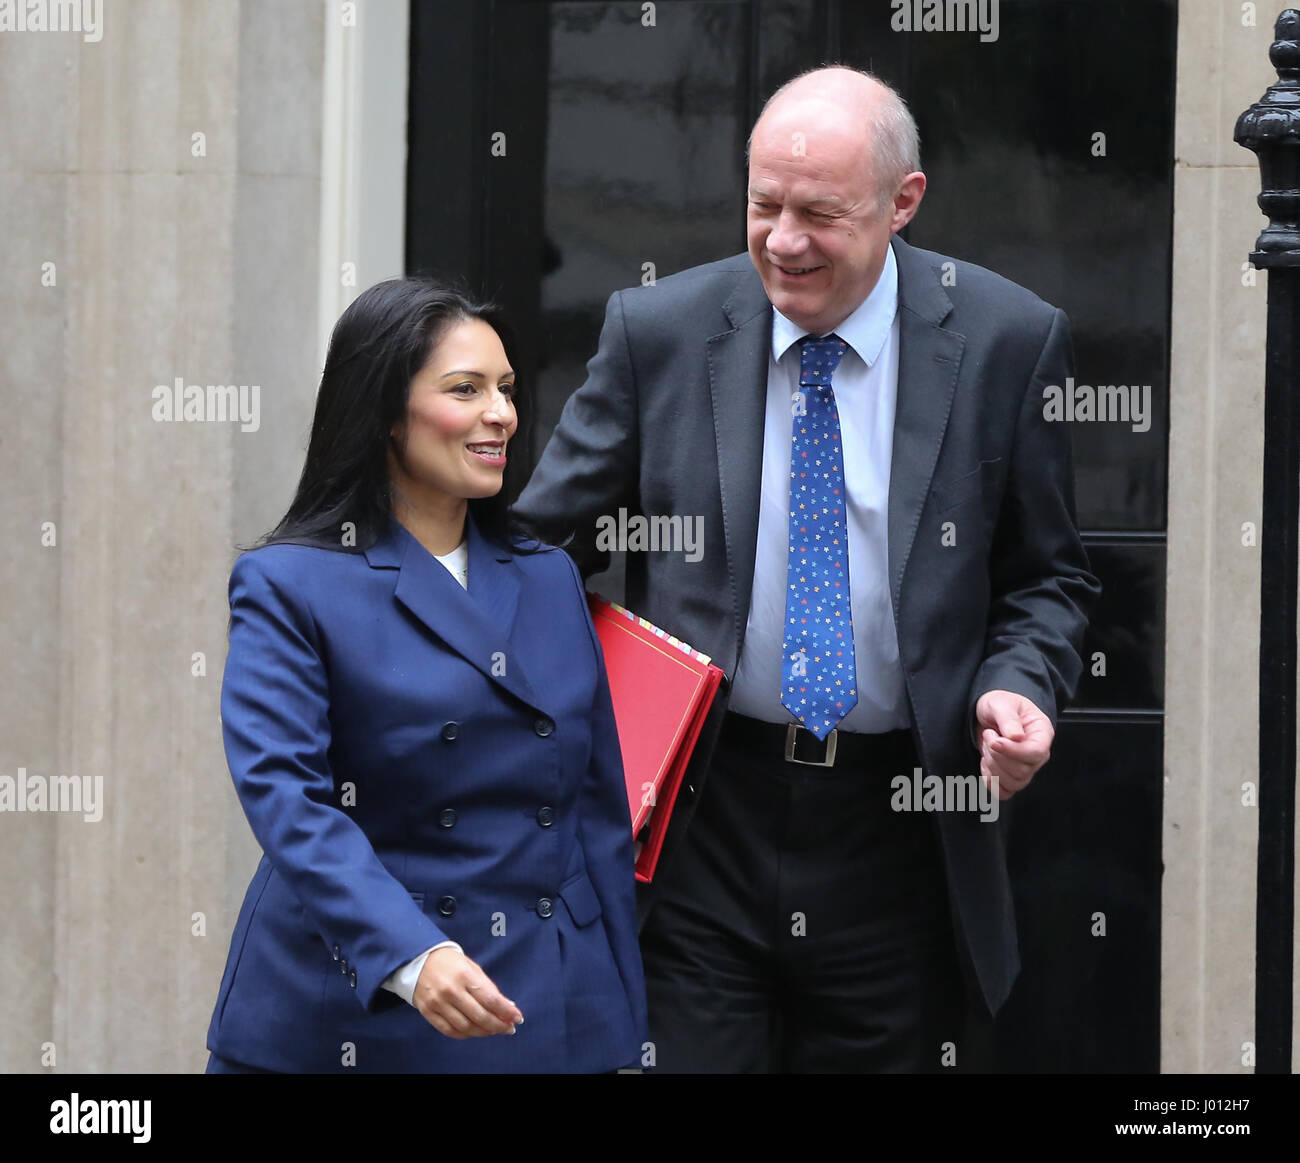 Cabinet ministers leave No 10 Downing Street following a Budget Cabinet meeting.  Featuring: Damian Green Secretary - Stock Image